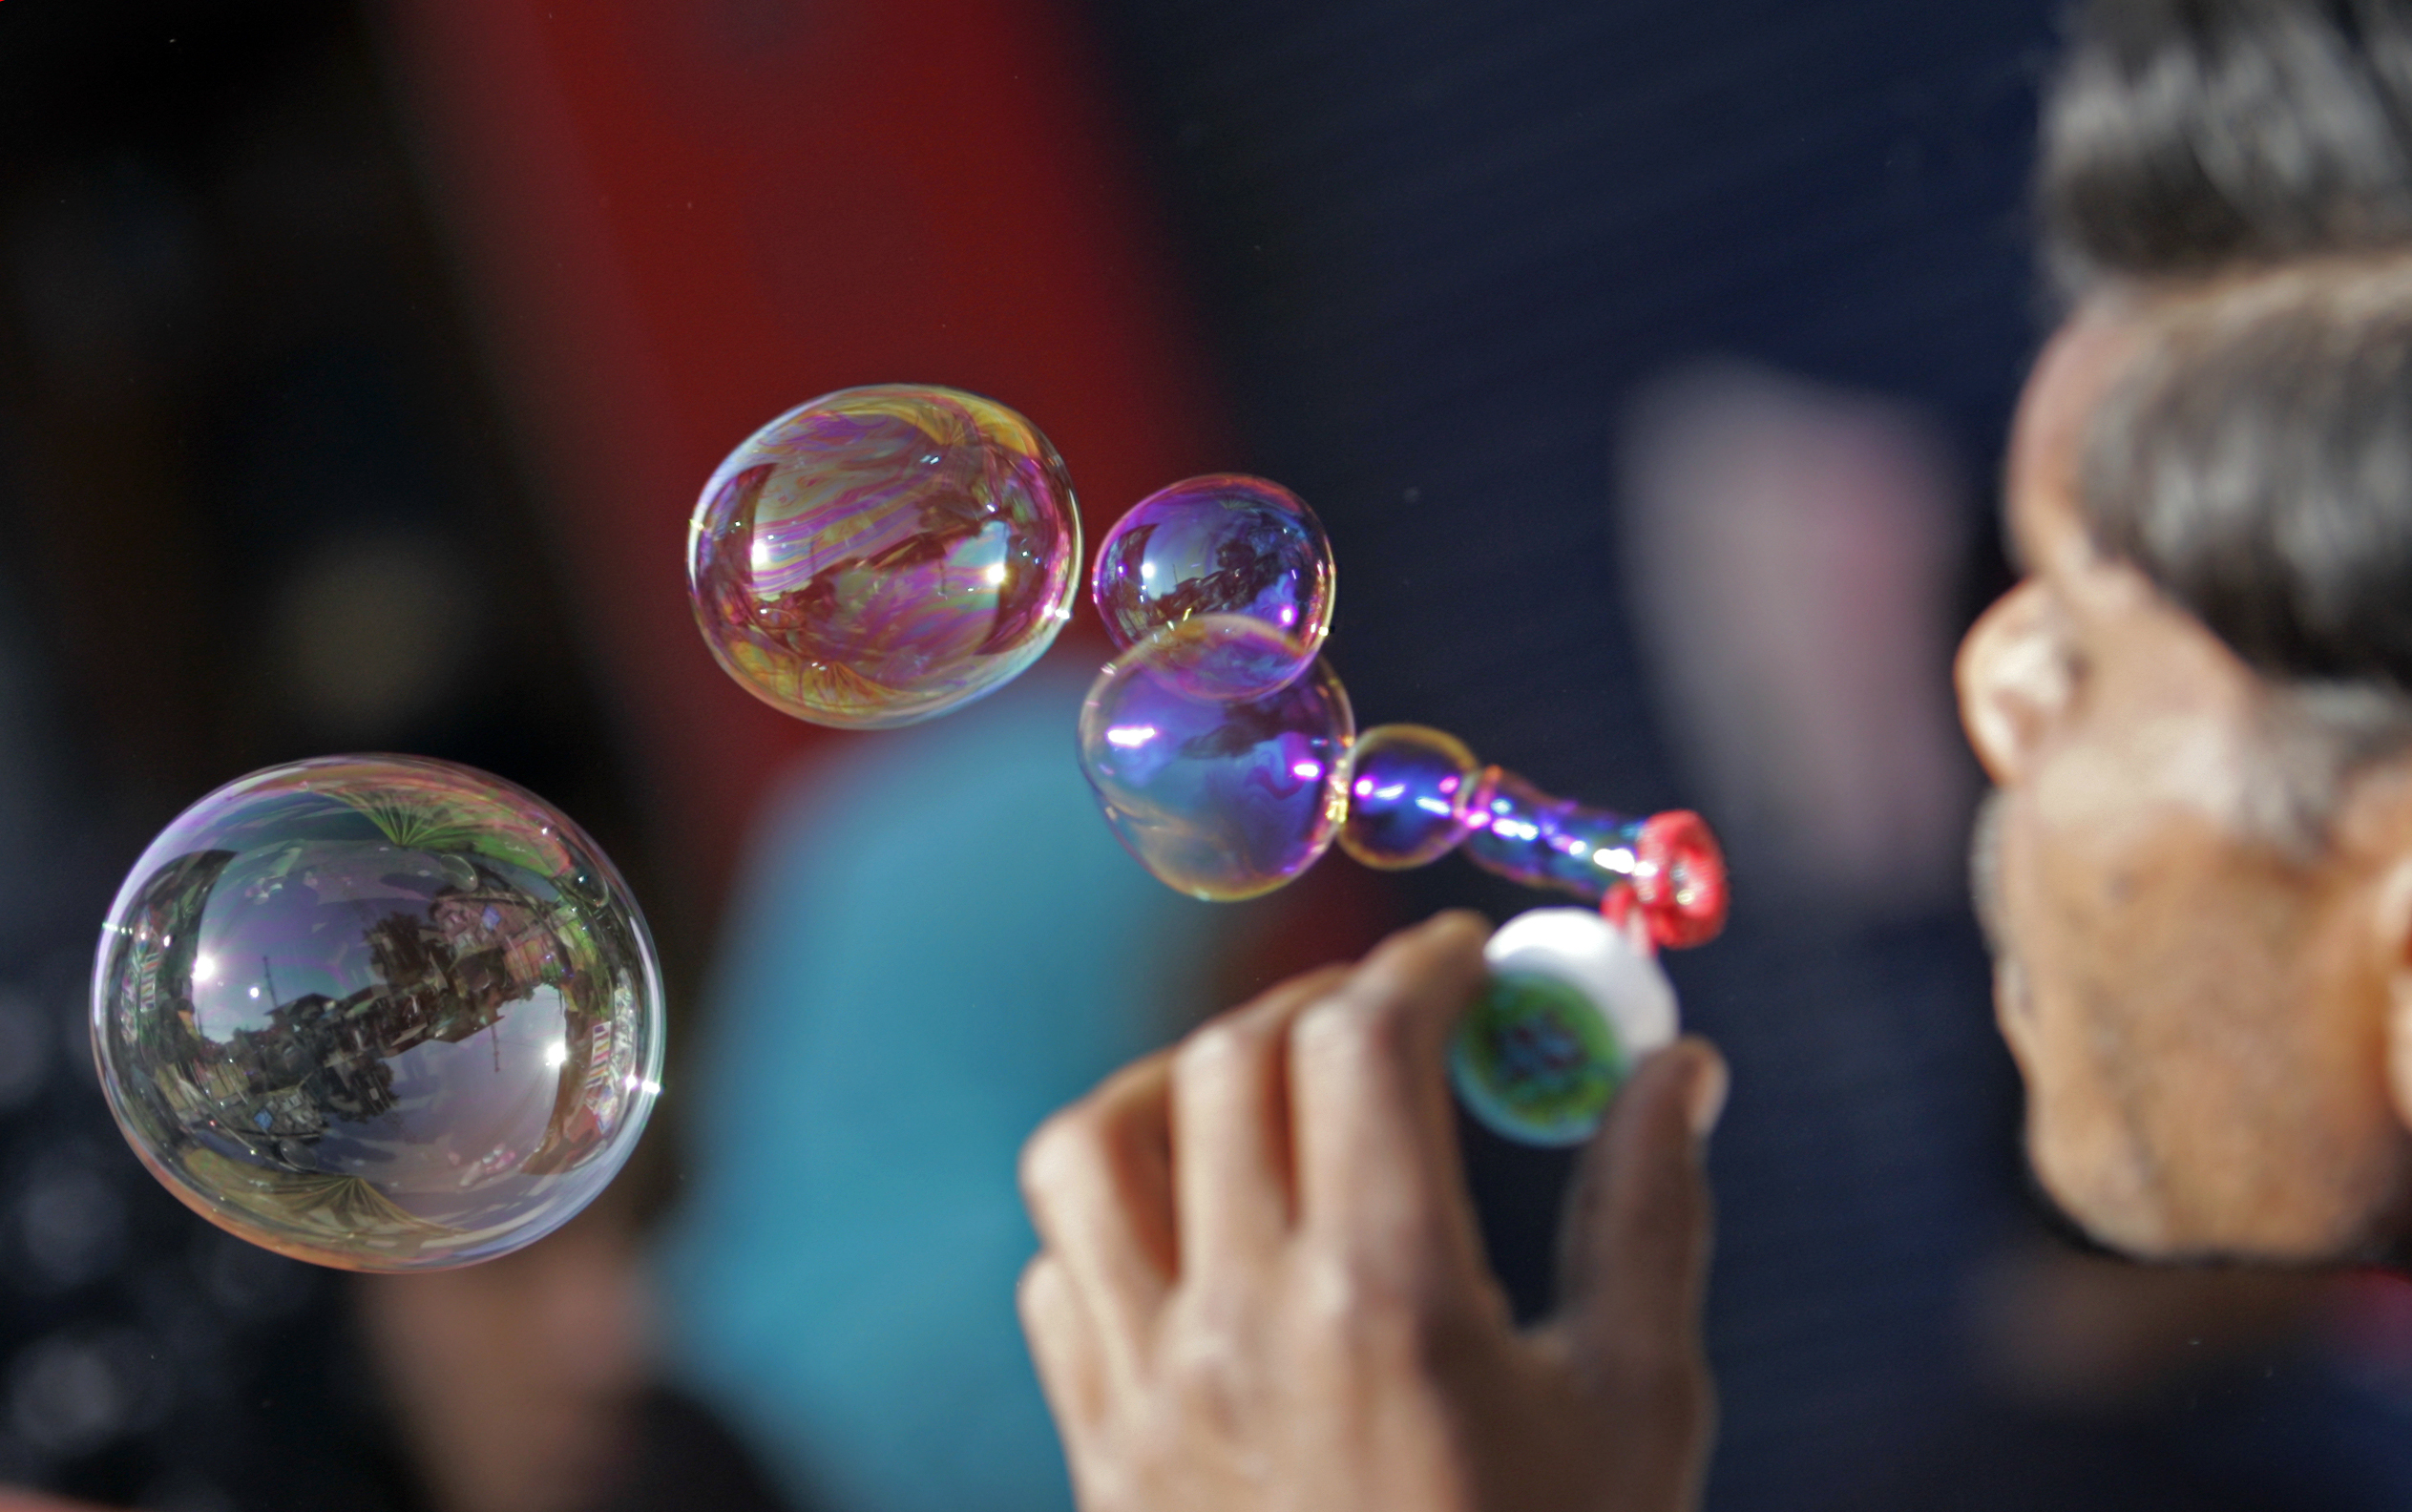 A vendor blows bubbles to attract customers ahead of Eid-al-Fitr festival at a market in Srinagar September 29, 2008. Eid-al-Fitr, an Islamic festival observed at the end of the fasting month of Ramadan, is scheduled to be celebrated in Kashmir on October 2, 2008.